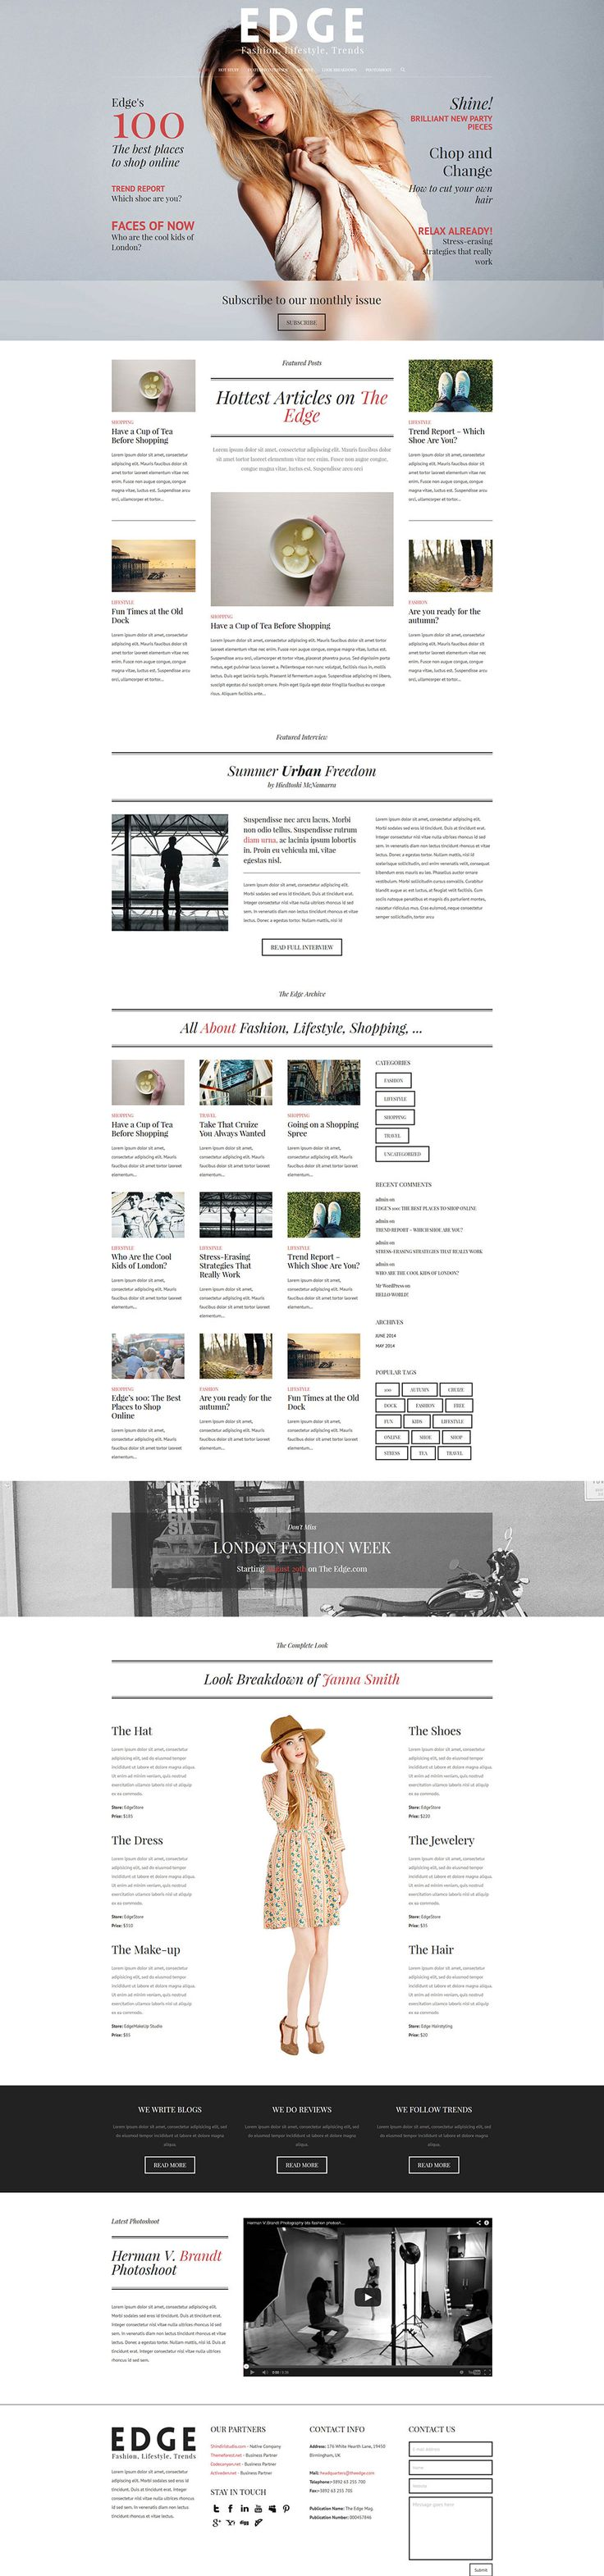 A creative take on a magazine website. This is a one-page magazine web design for wordpress. Check out the template http://themeforest.net/item/the-edge-one-page-multipurpose-wordpress-theme/8056417?WT.ac=new_item&WT.z_author=Br0